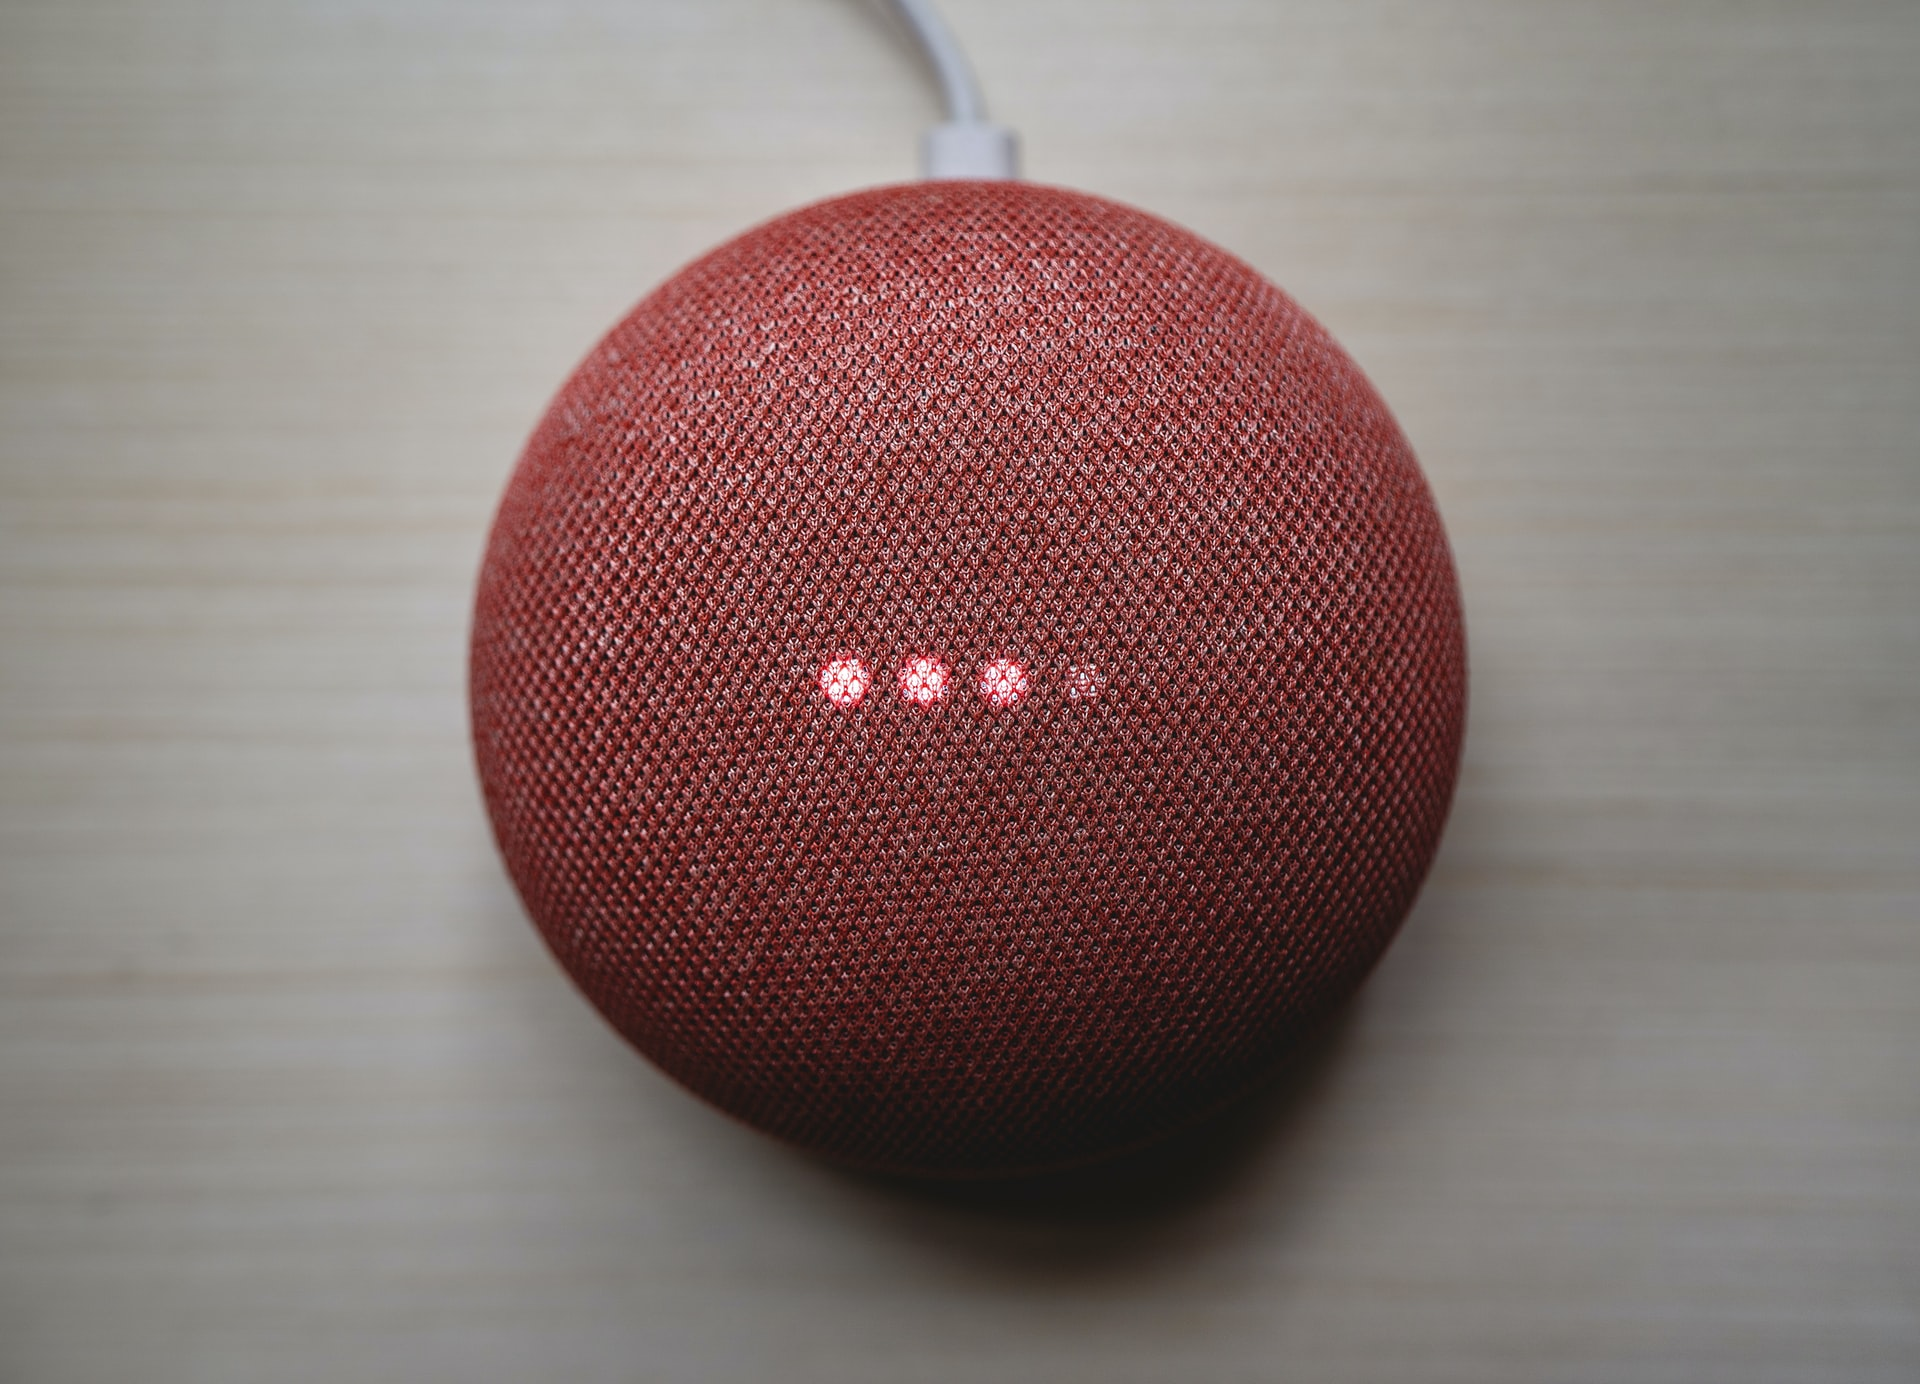 Voice Search SEO: 6 Ways to Outrank Your Competitor for Voice Based Queries